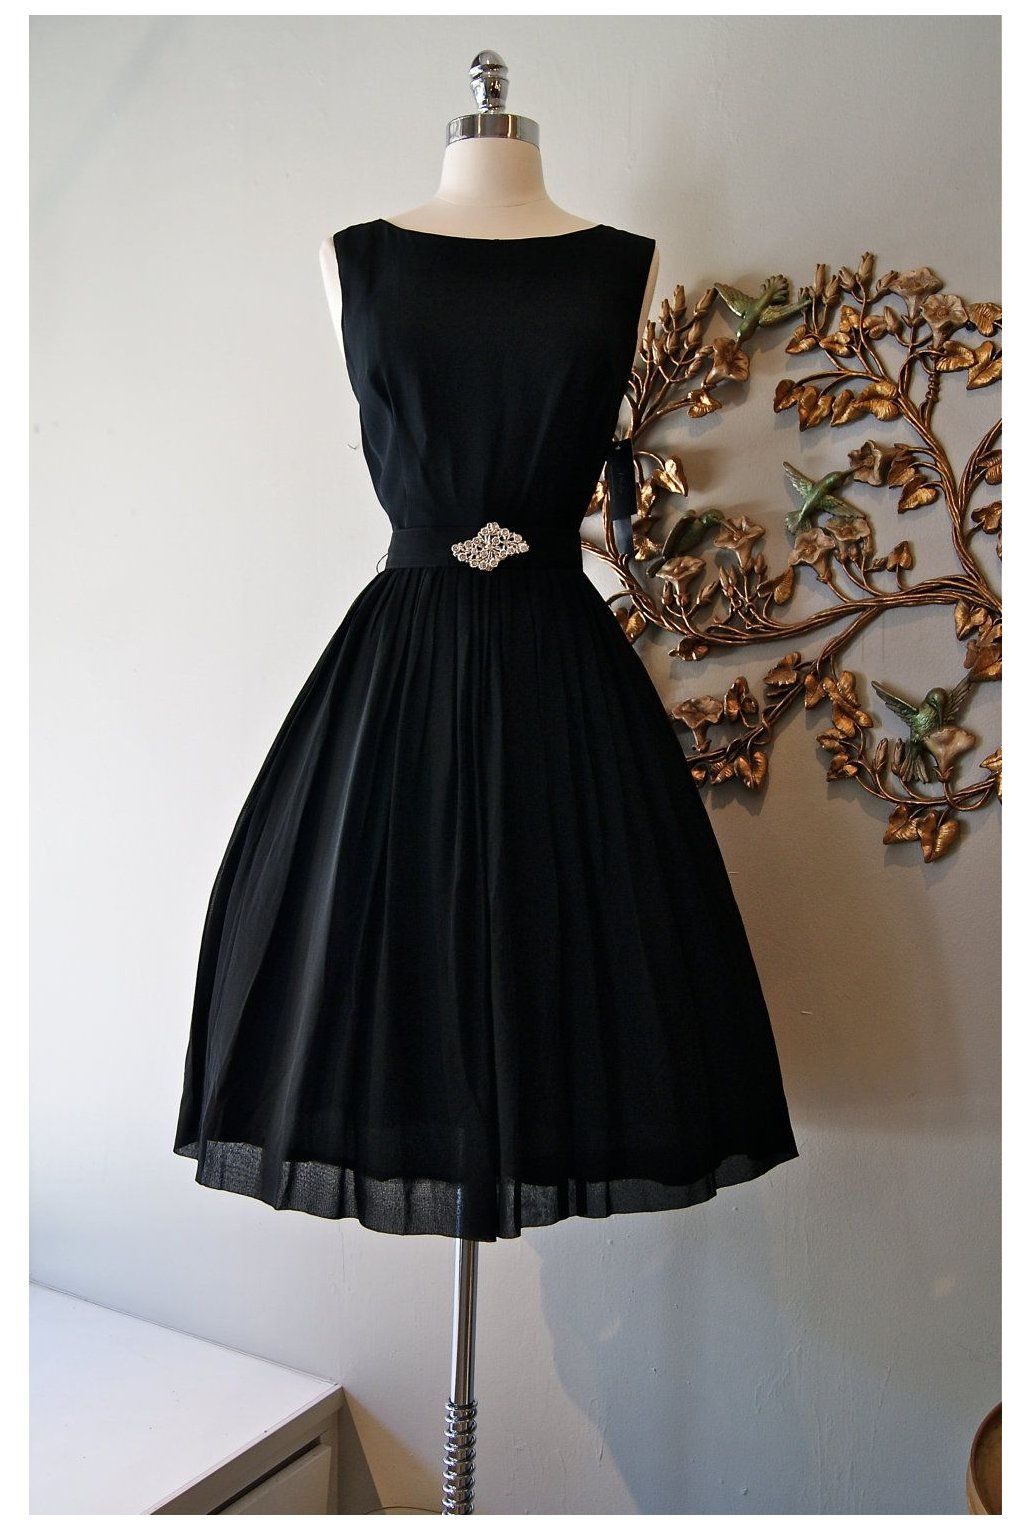 60s Dress 60s Cocktail Dress 60s Party Dress Vintage Black Dress With Rhinestone Be In 2021 60s Cocktail Dress Chiffon Party Dress Cocktail Dress Vintage [ 1530 x 1031 Pixel ]